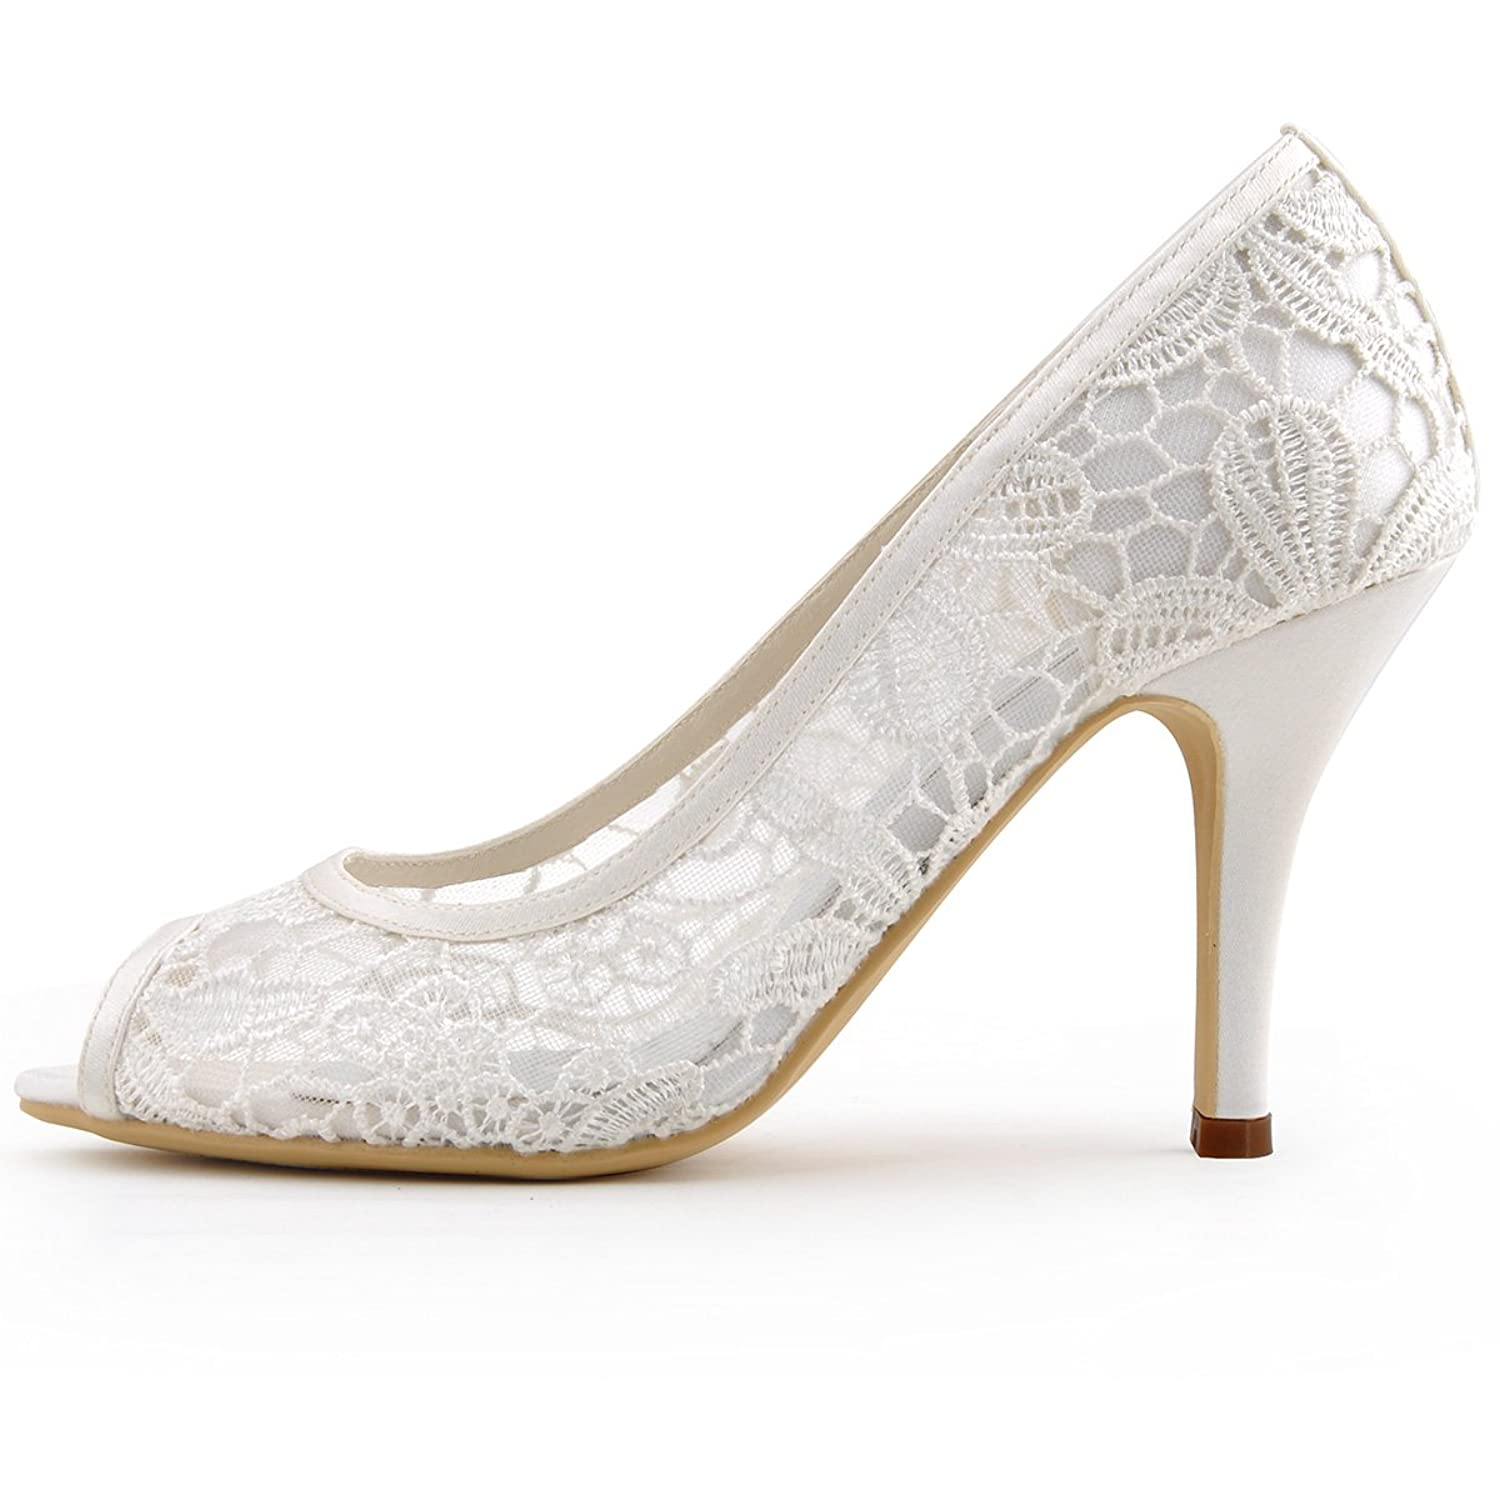 ElegantPark HP1400 Women's Peep Toe Pumps Stiletto High Heels Prom Lace  Wedding Party Court Shoes Ivory UK 9: Amazon: Shoes & Bags